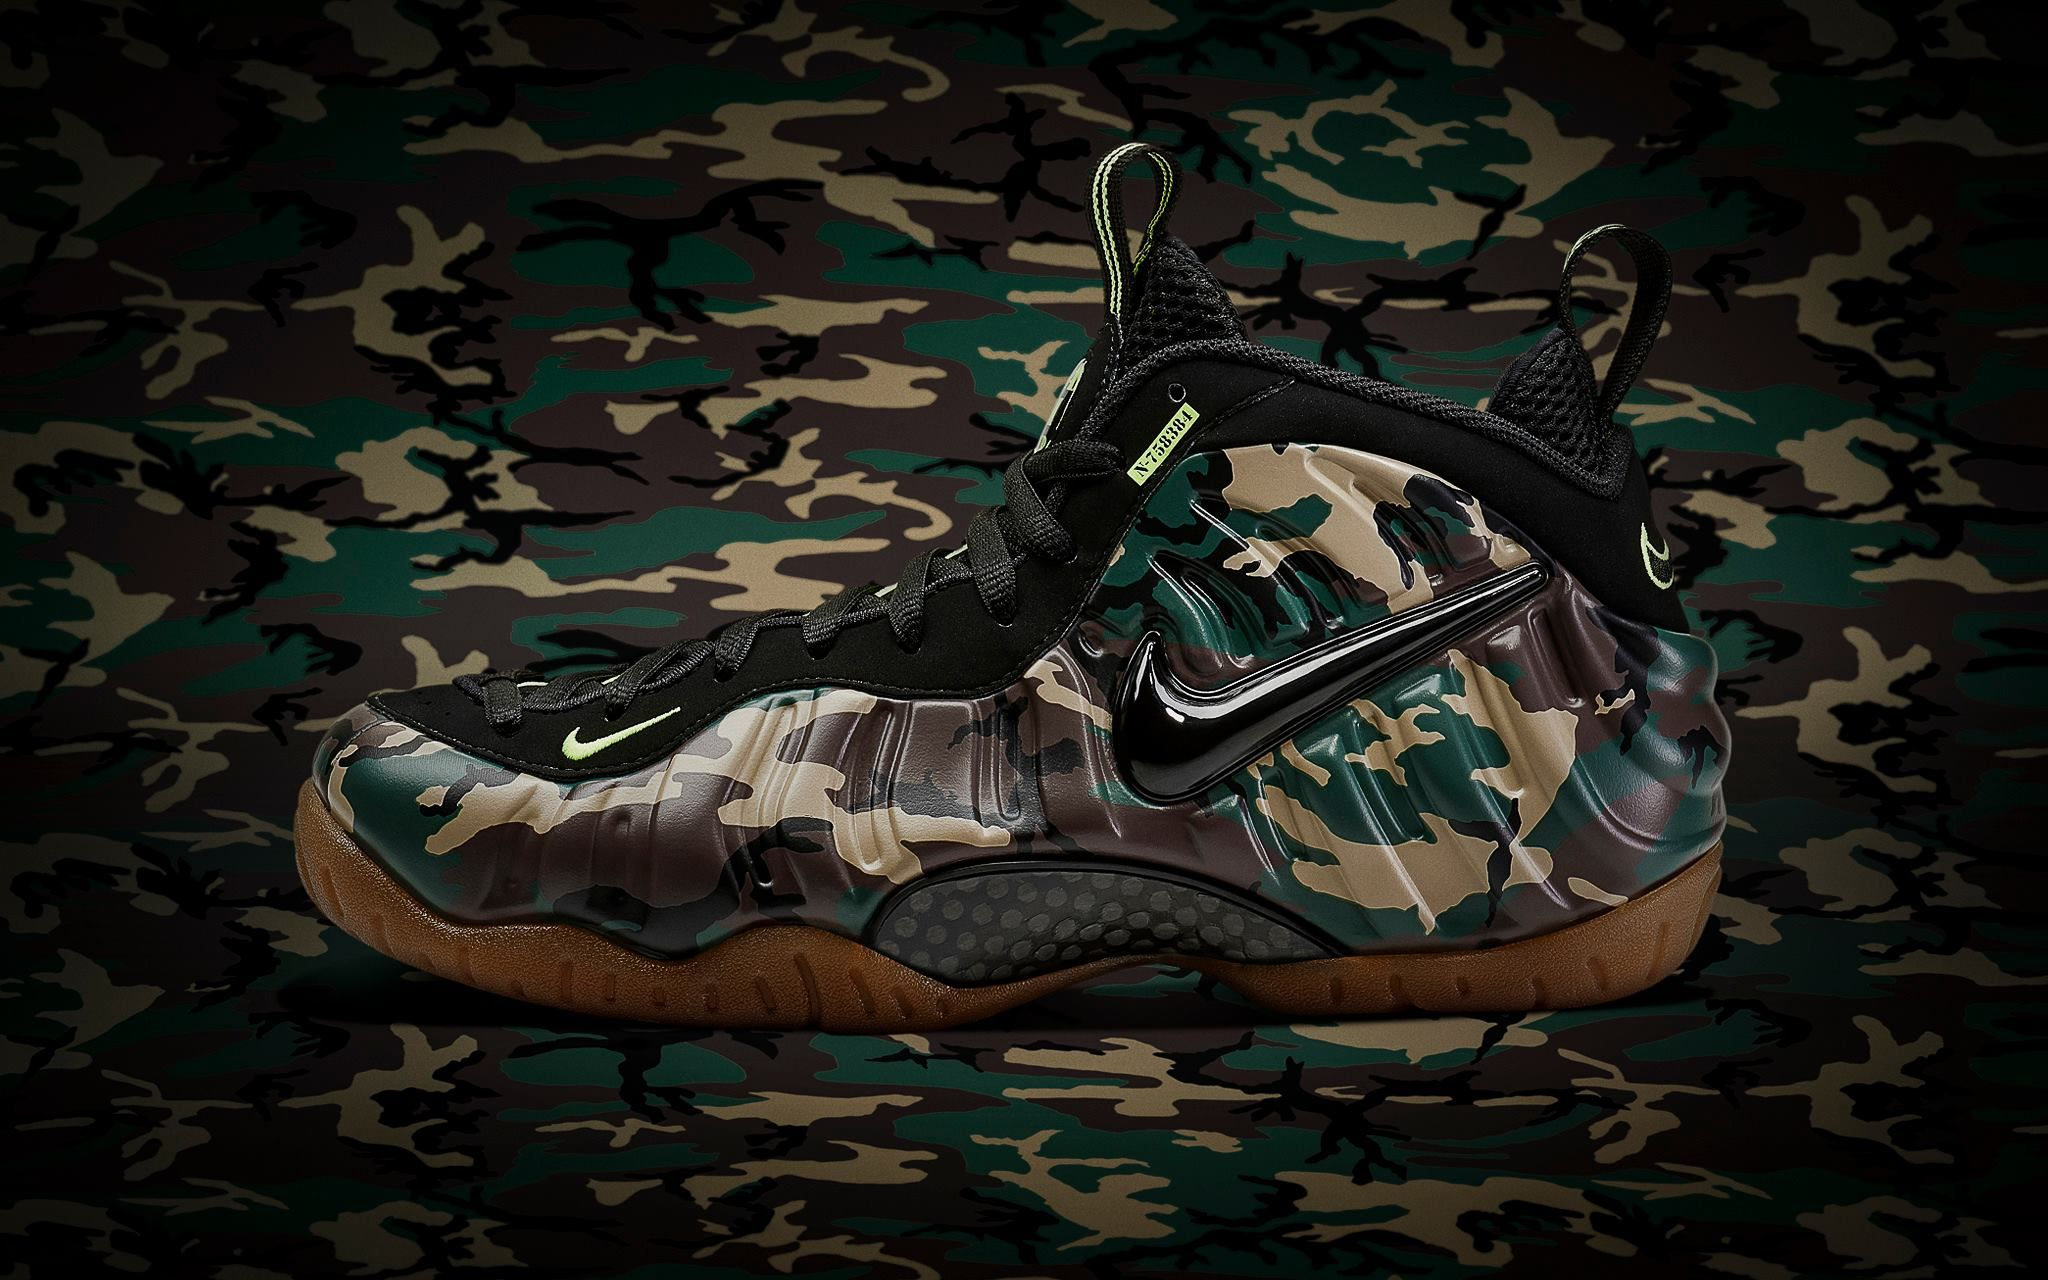 low priced 9c0ab 22754 Nike Air Foamposite Pro - Army Camo